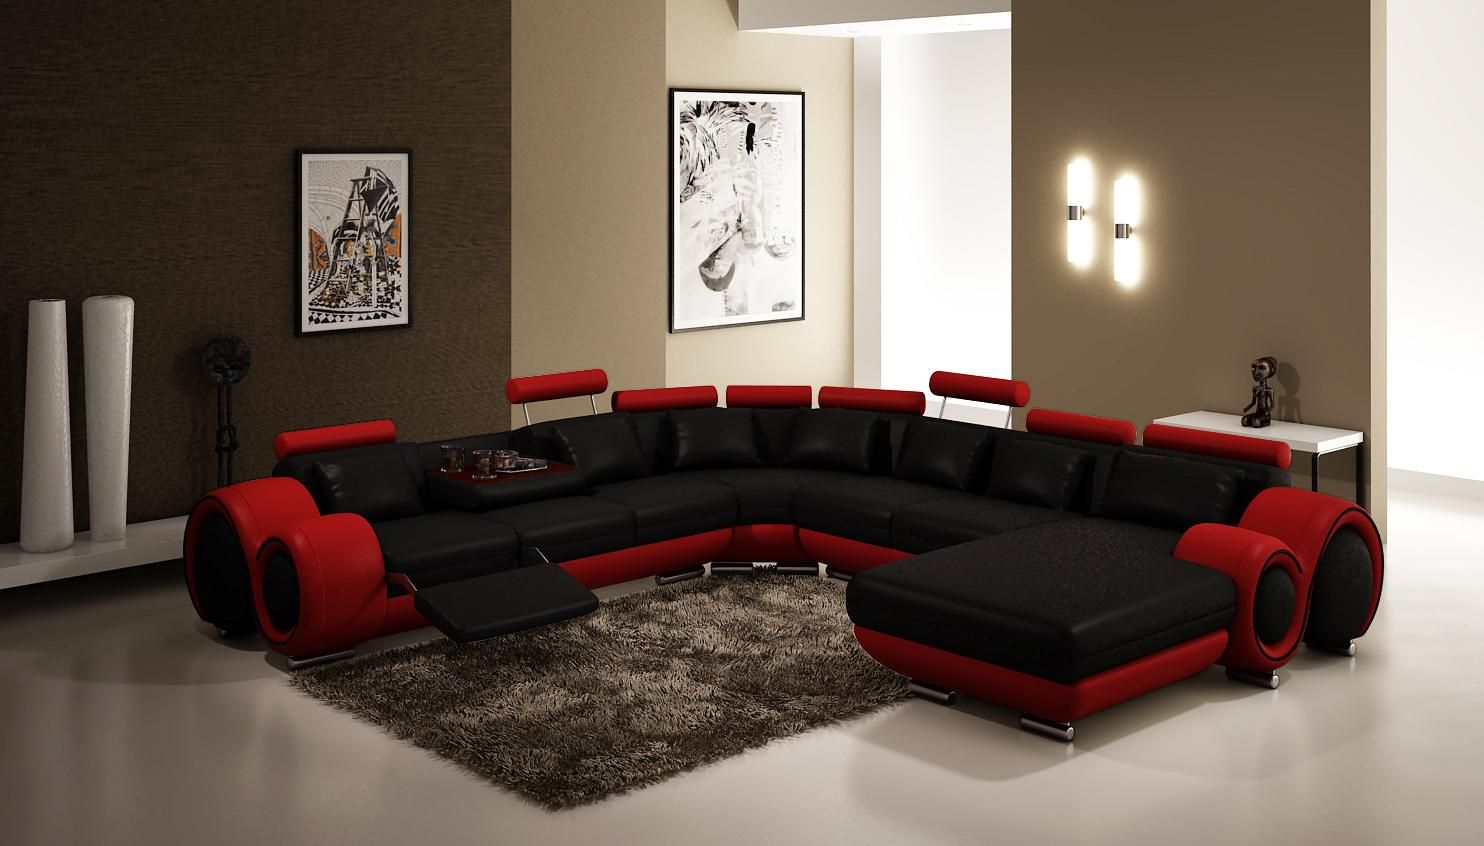 4084 Sectional Sofa With Recliners In Black And Red Leather Furnituregallerynyc Com